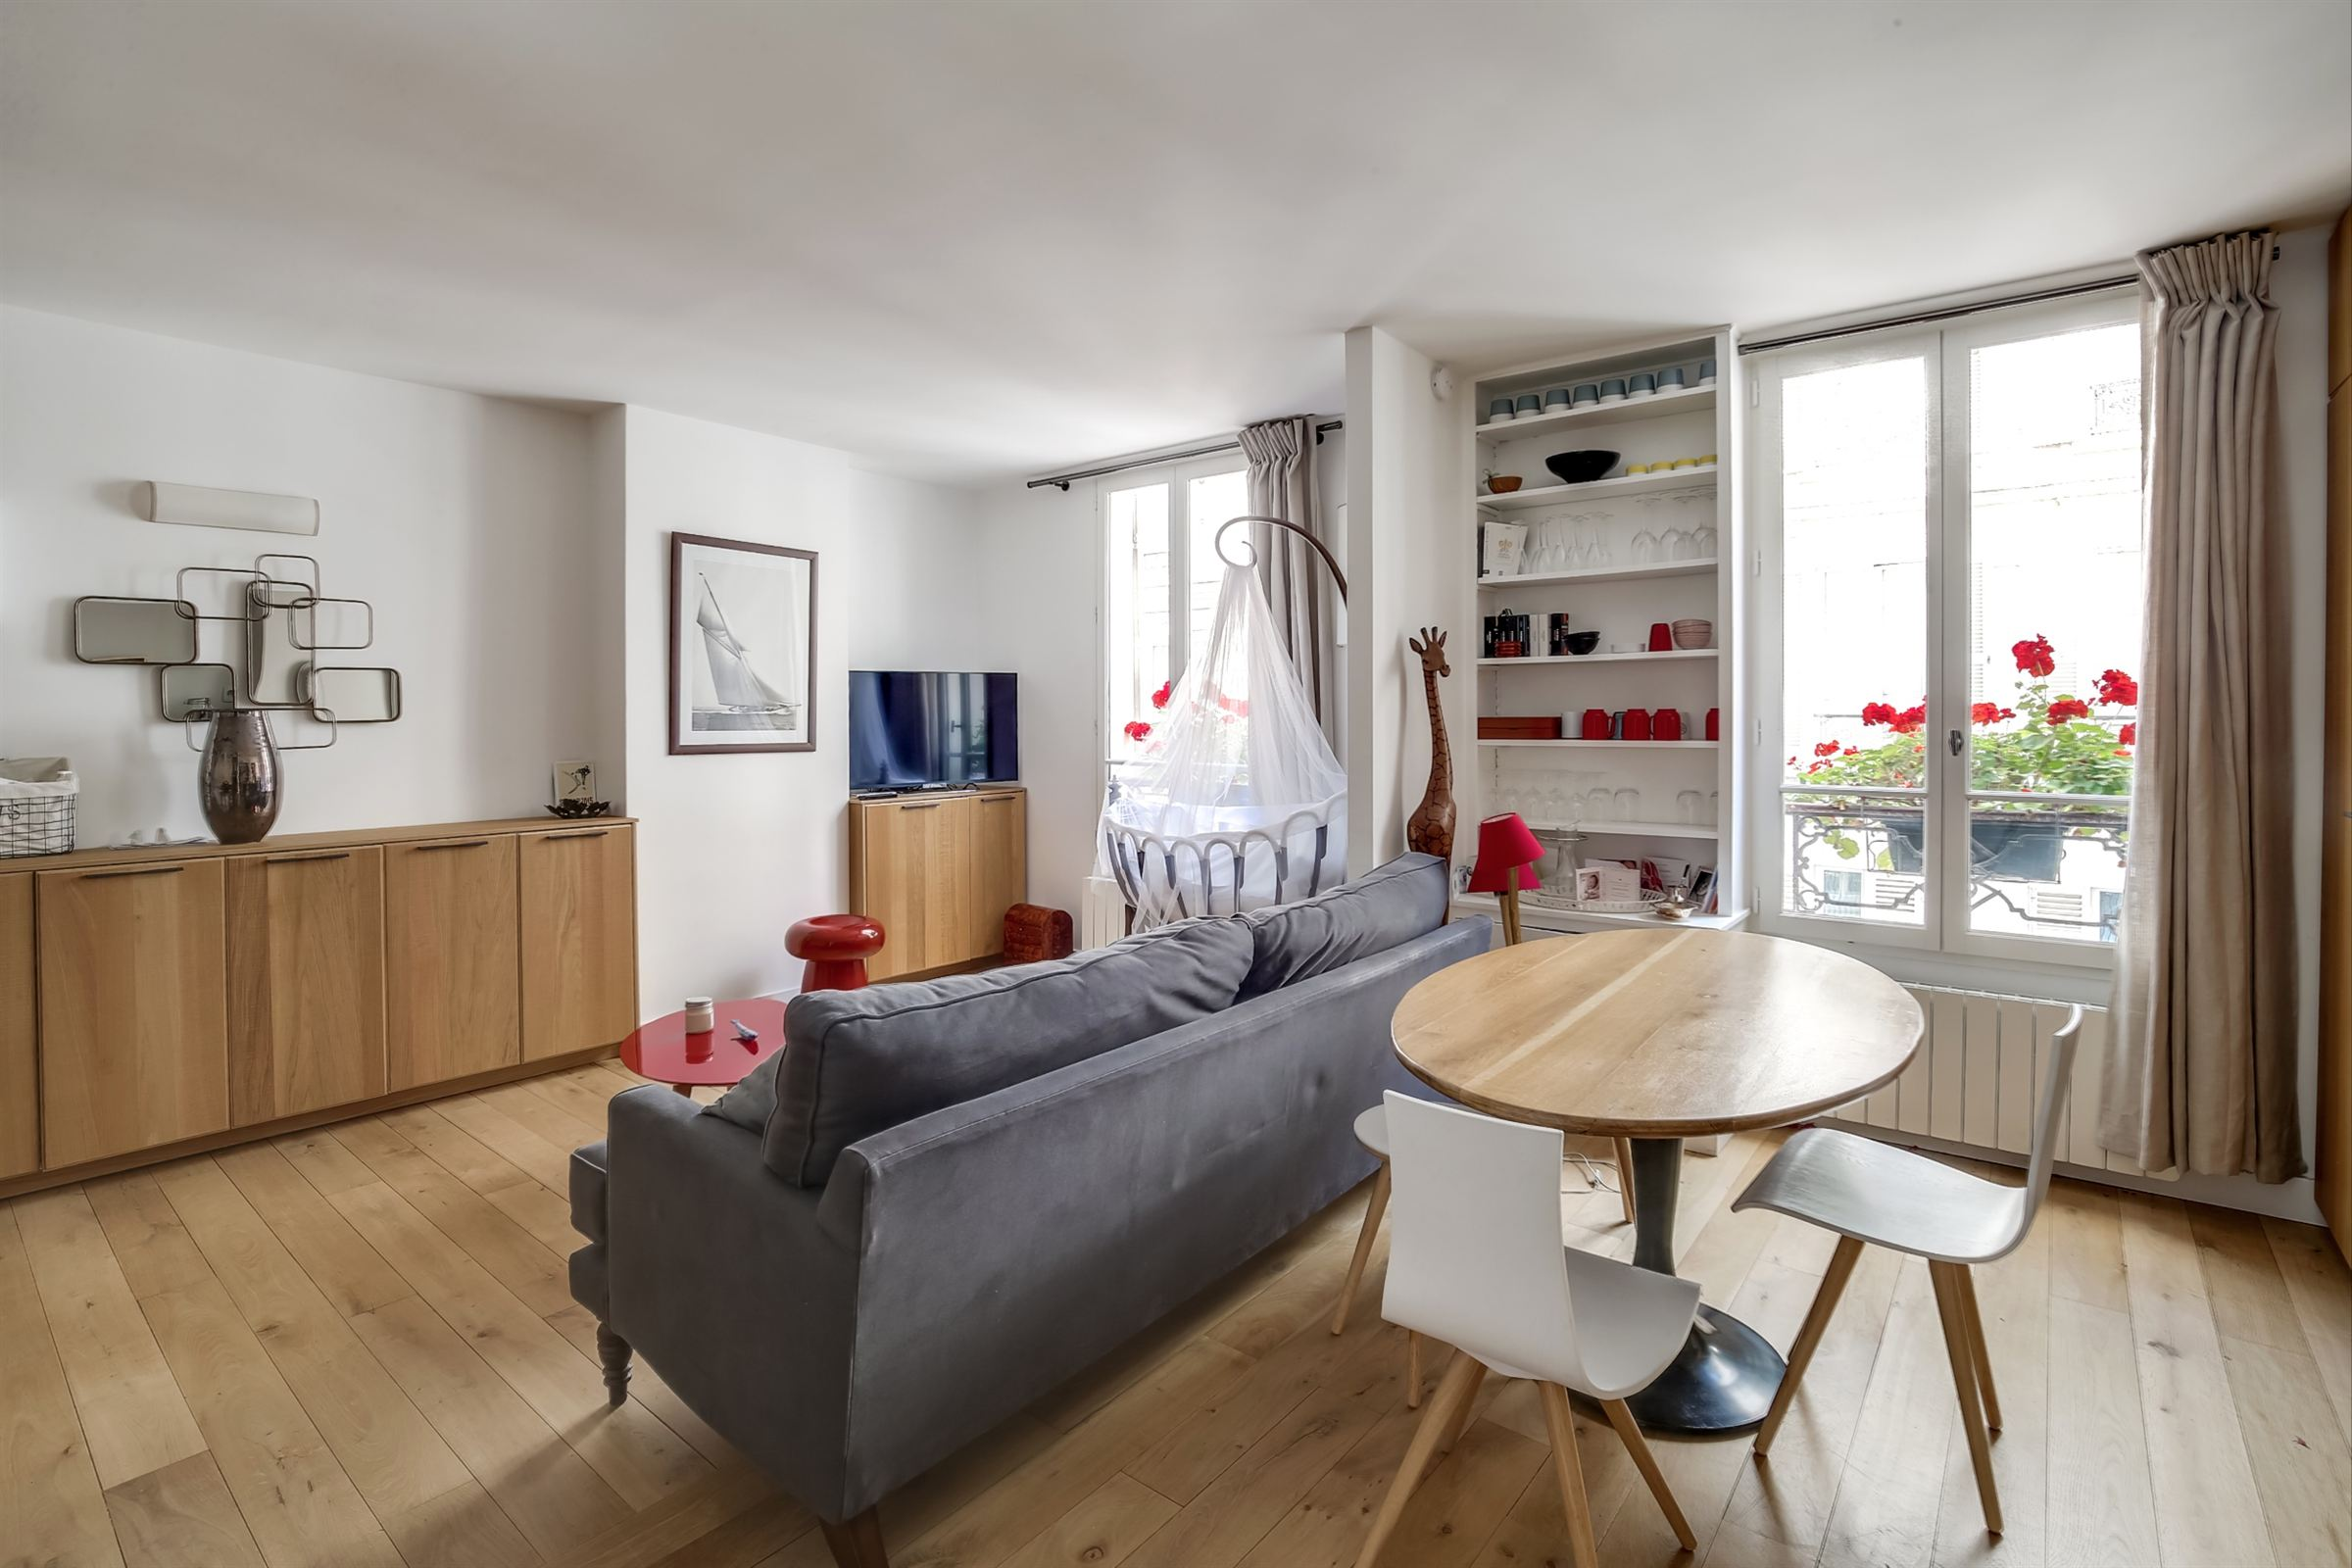 sales property at Pied-à-terre for sale, Sole Agent in Paris 7th - rue Cler